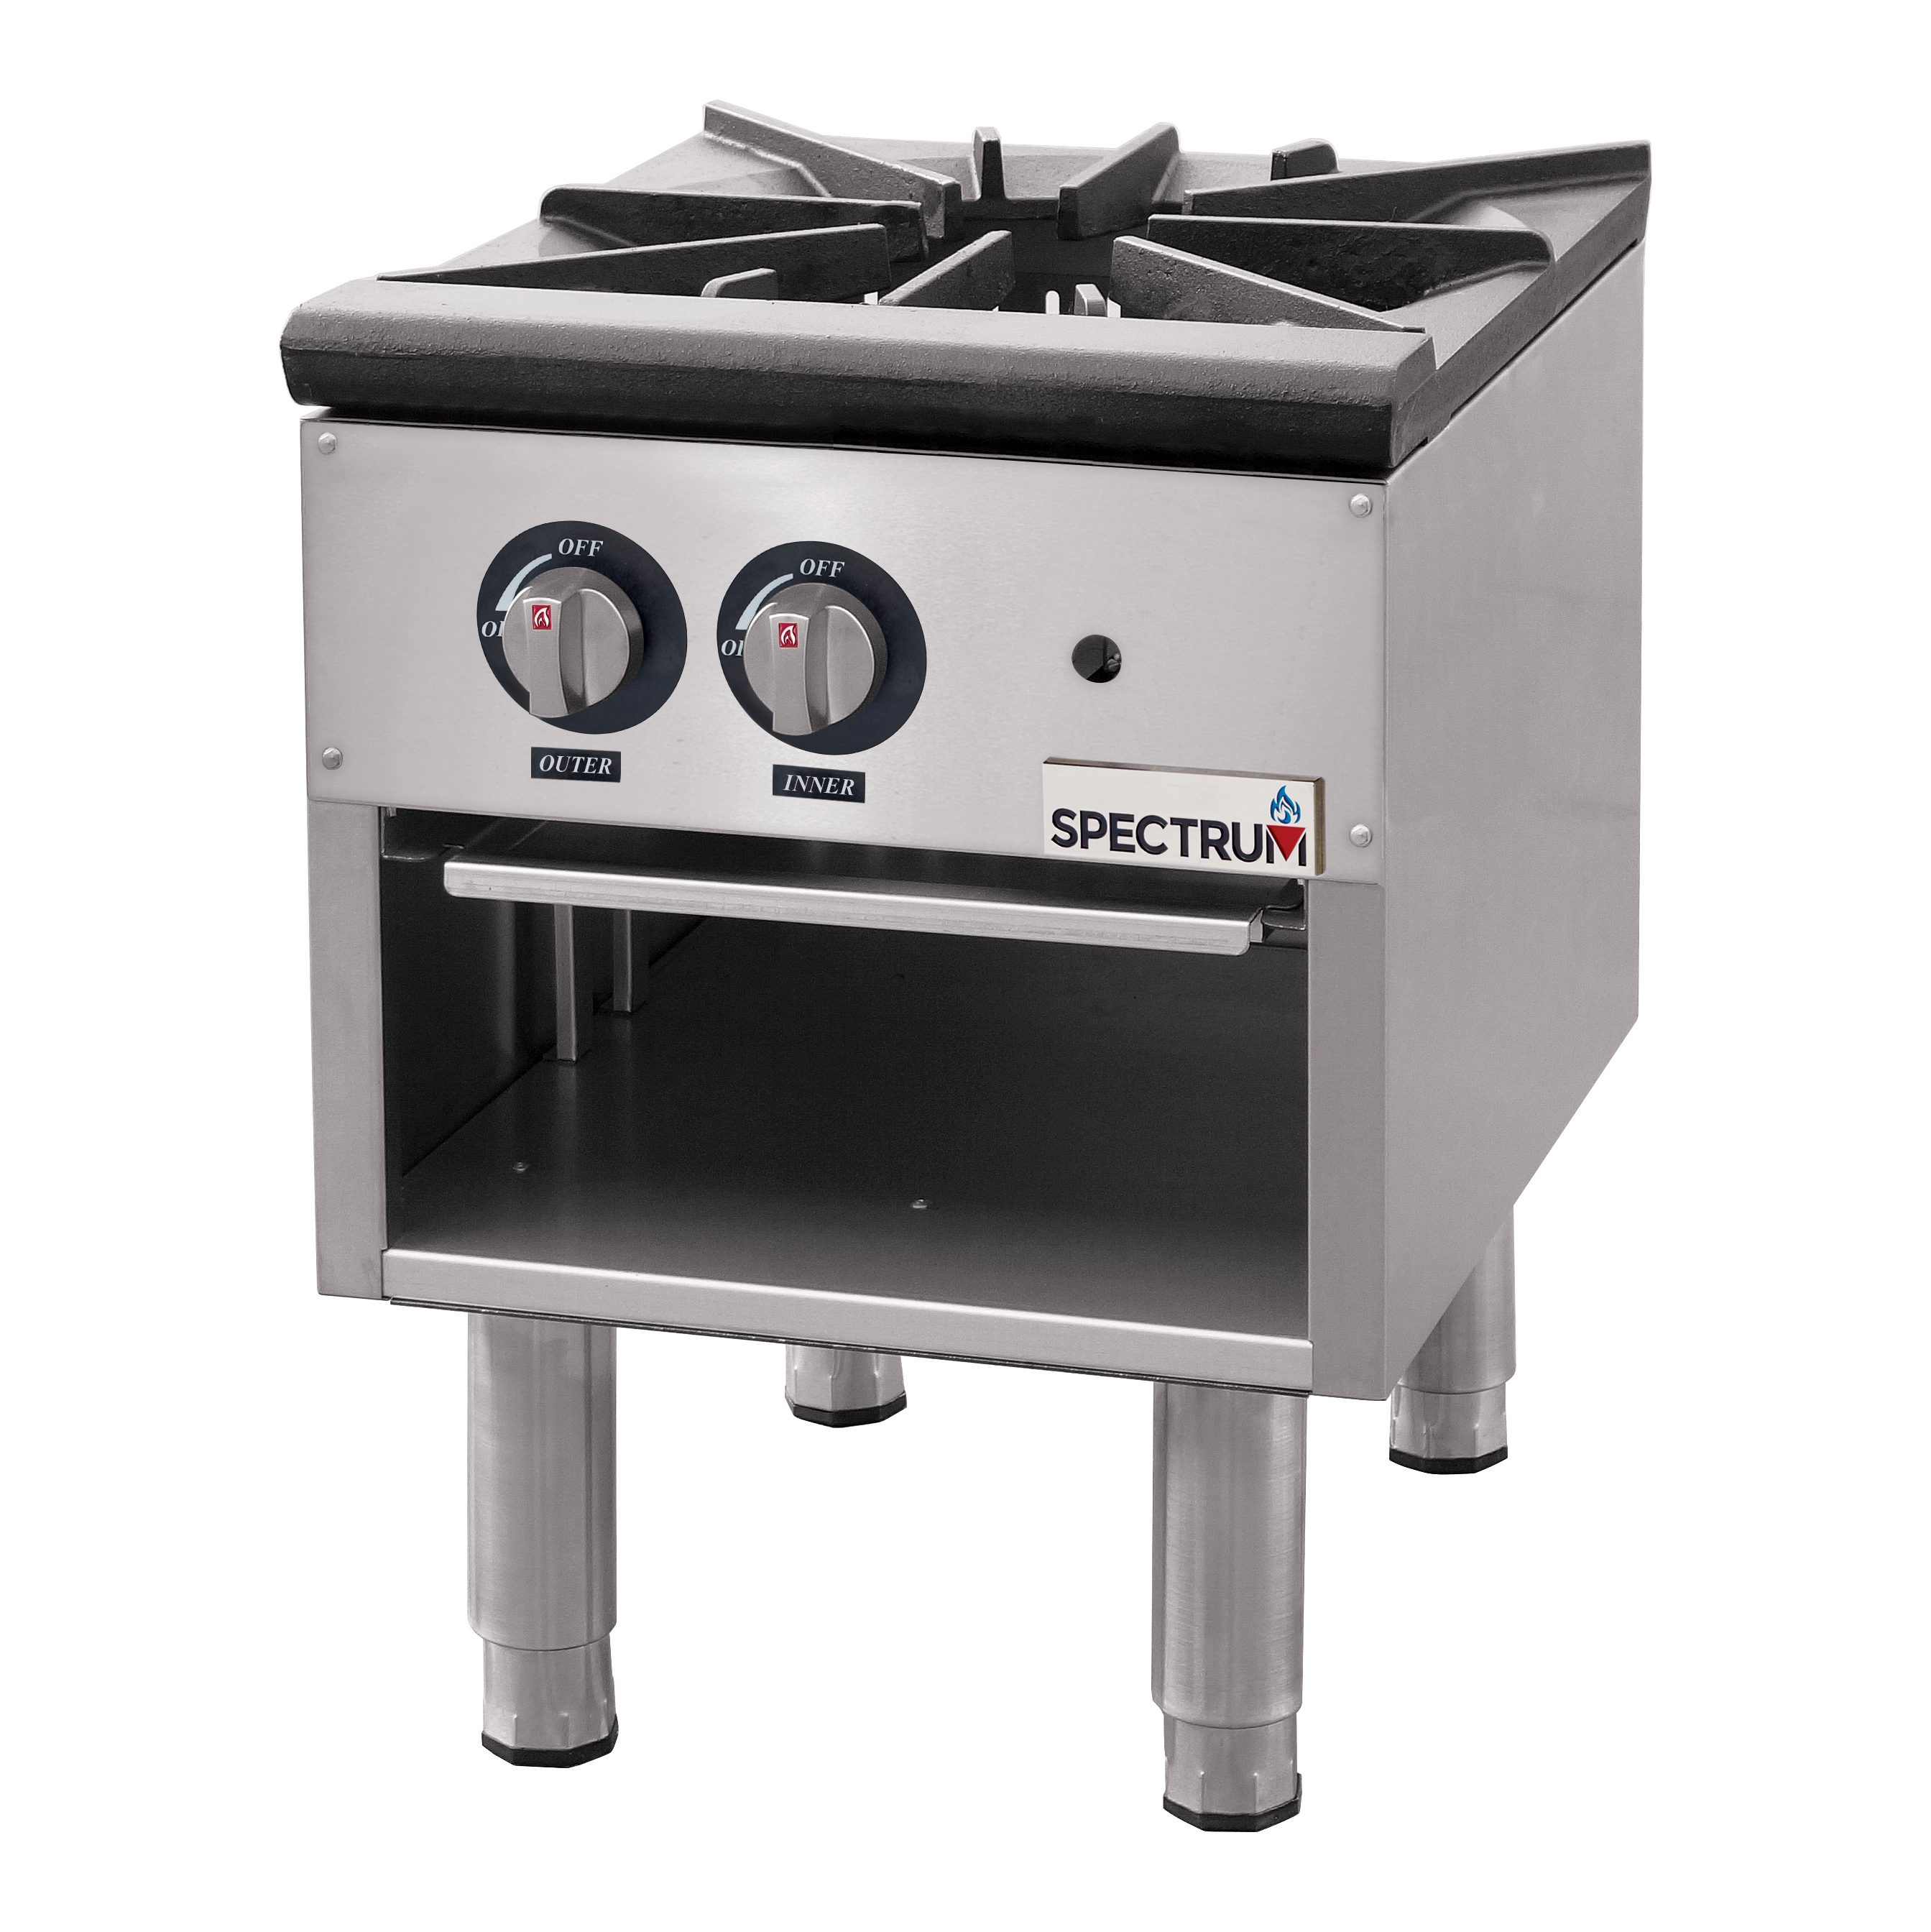 Winco NGSP-1 range, stock pot, gas